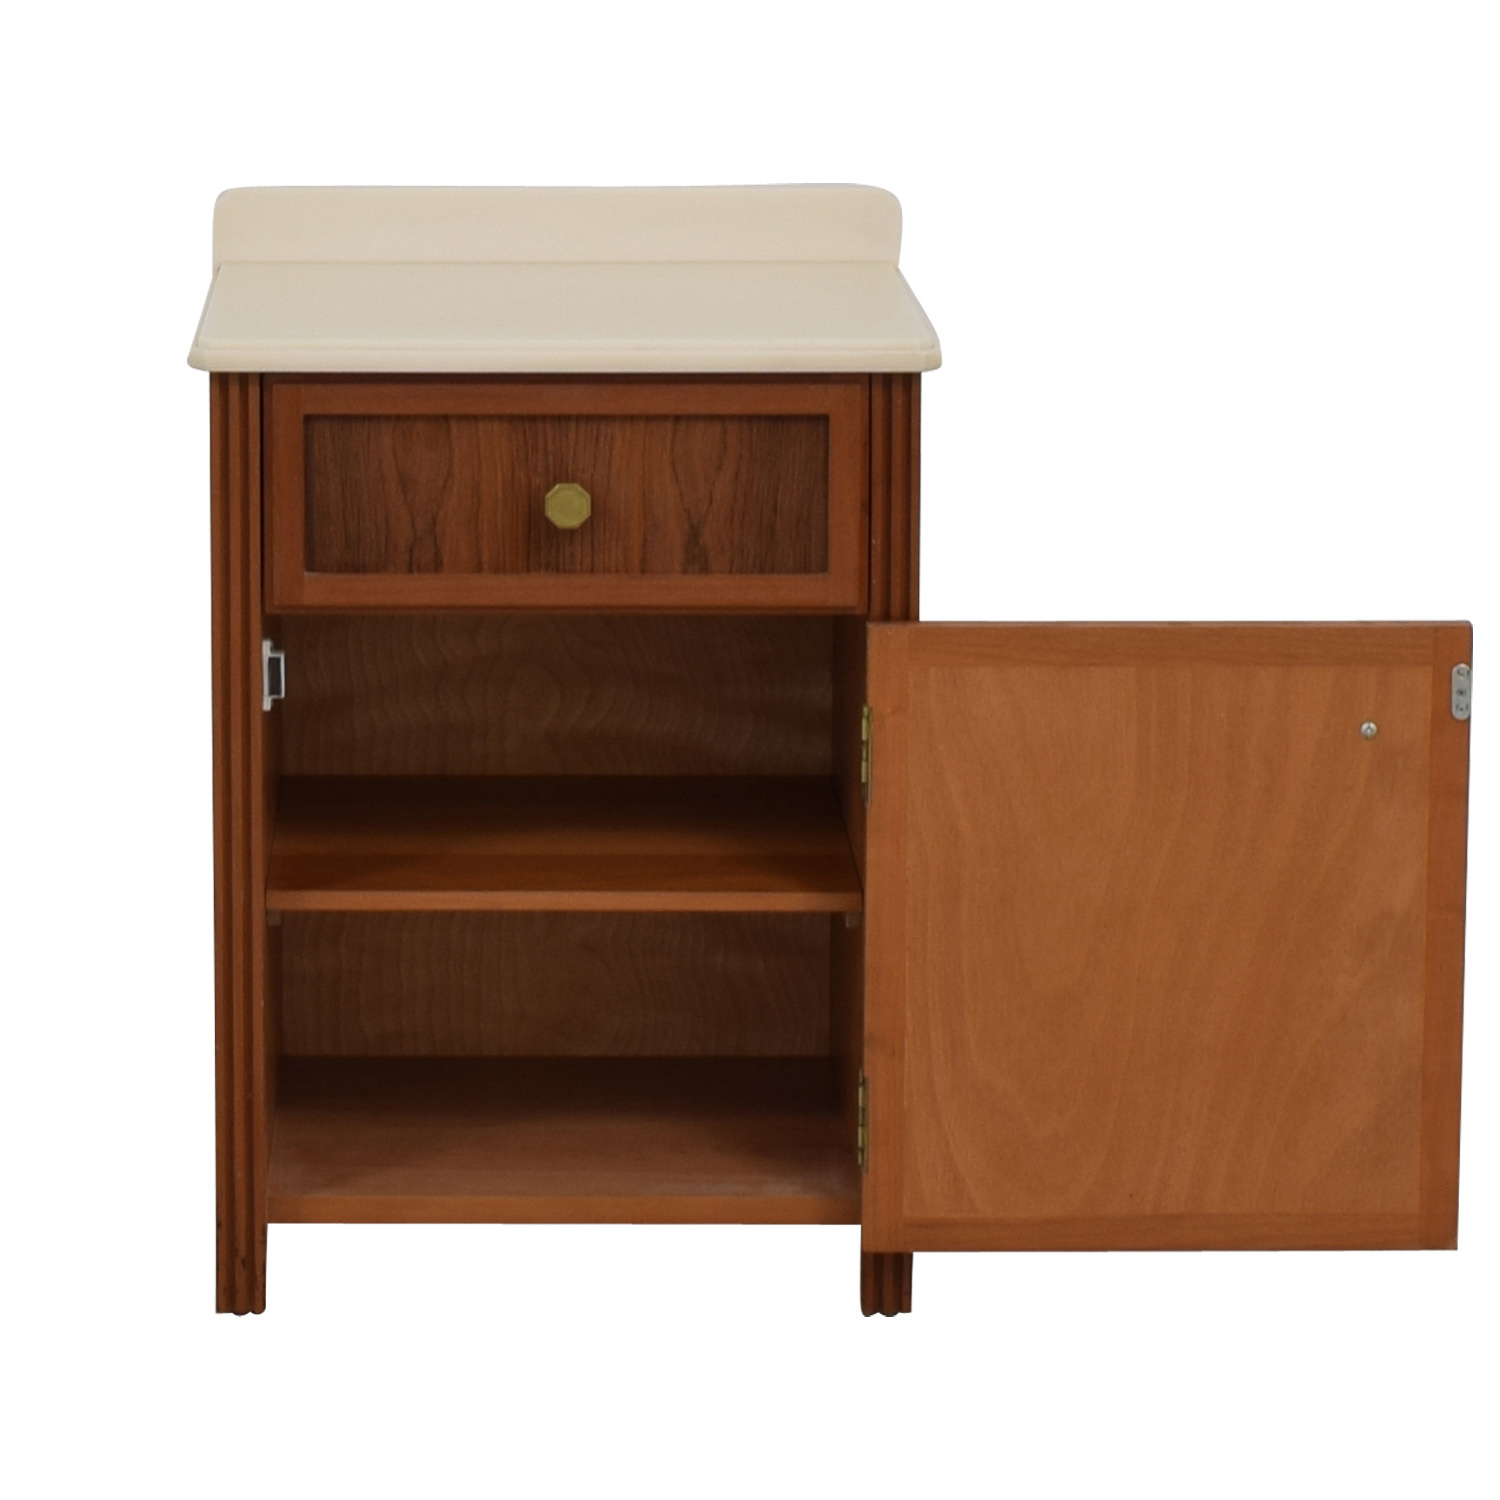 Single Drawer with Storage Cabinet discount